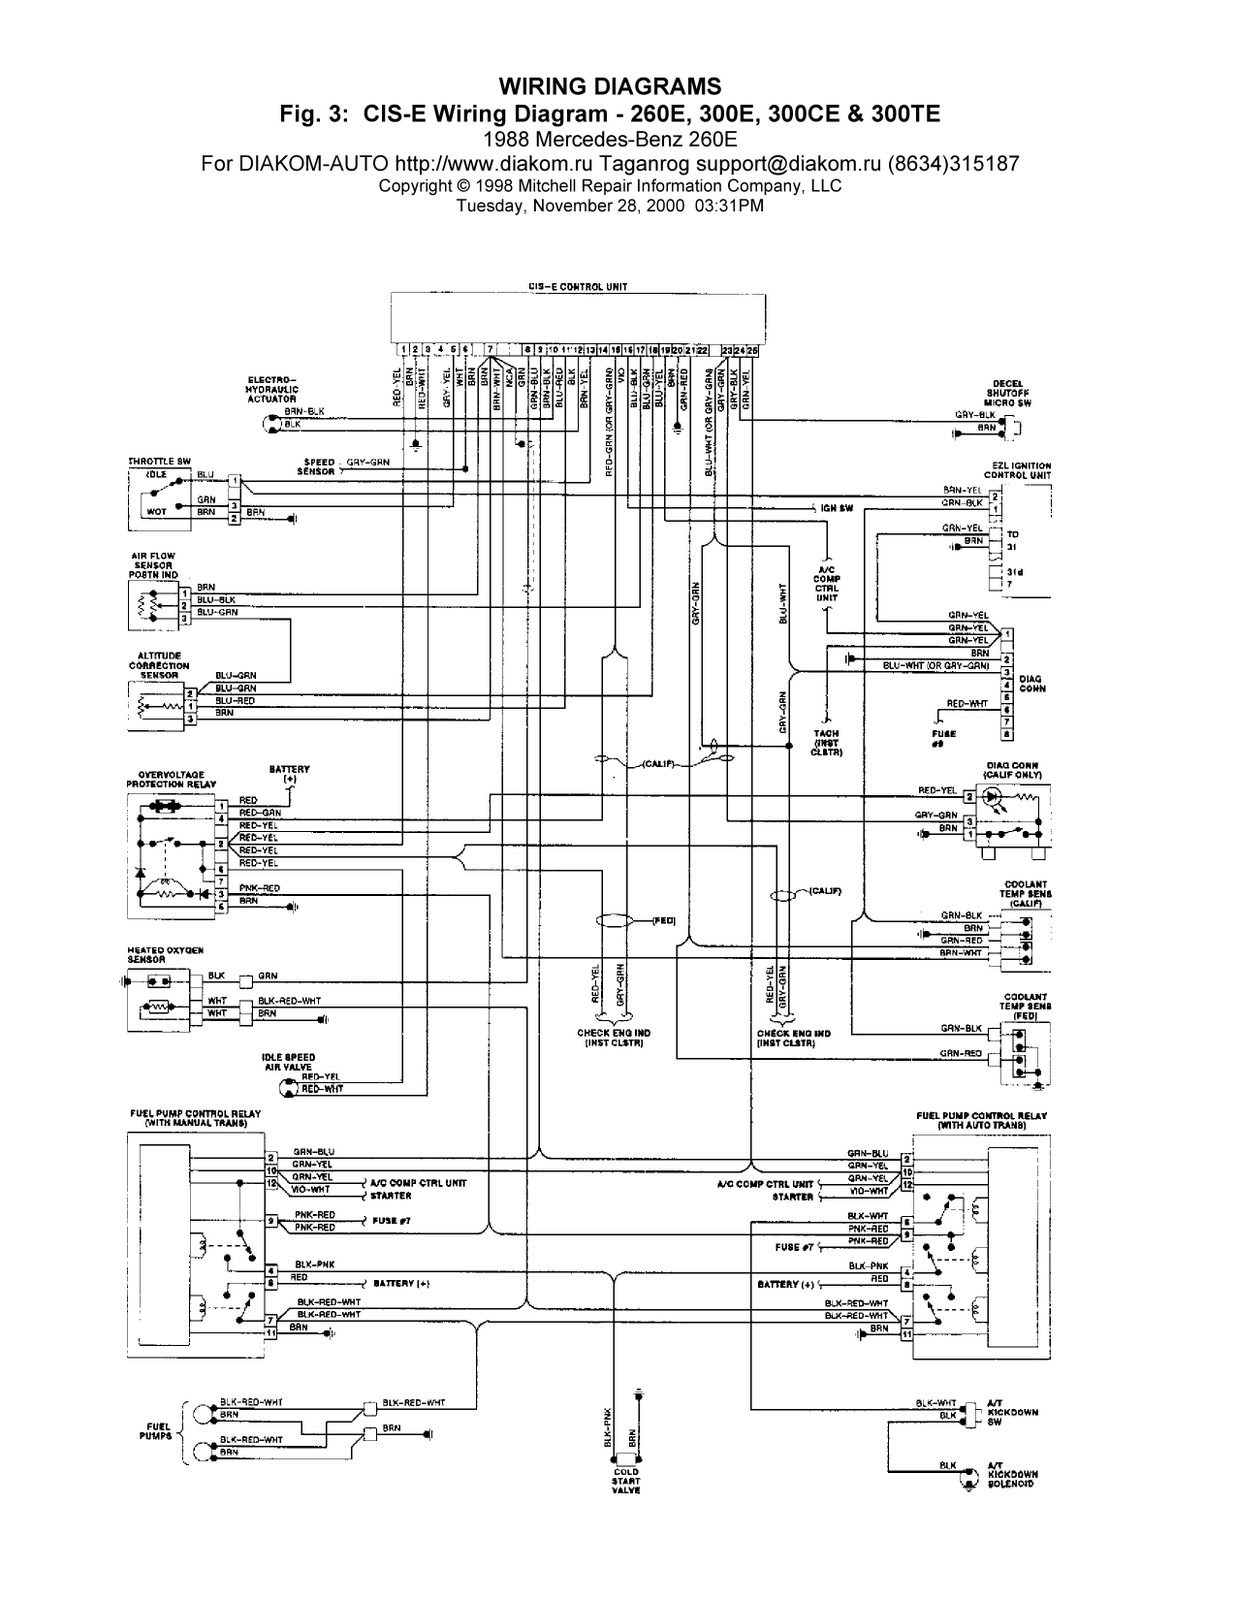 mercedes sel truck engines diagram wiring diagram rowsmercedes 560sec wiring diagram 7 [ 1236 x 1600 Pixel ]